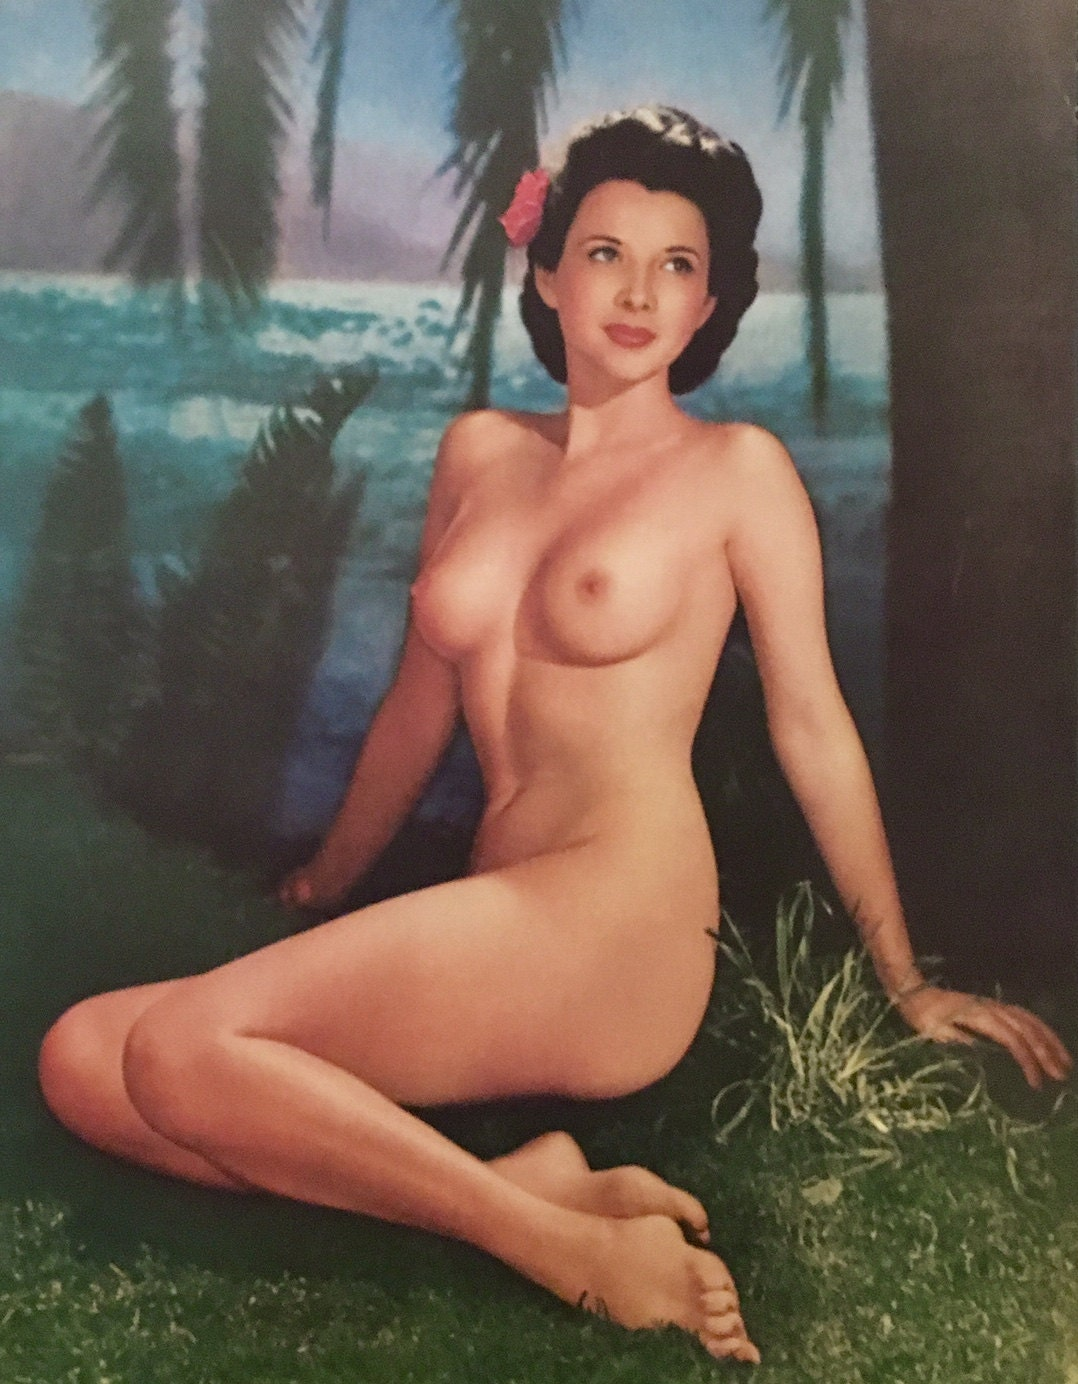 Nude woman loose pussy